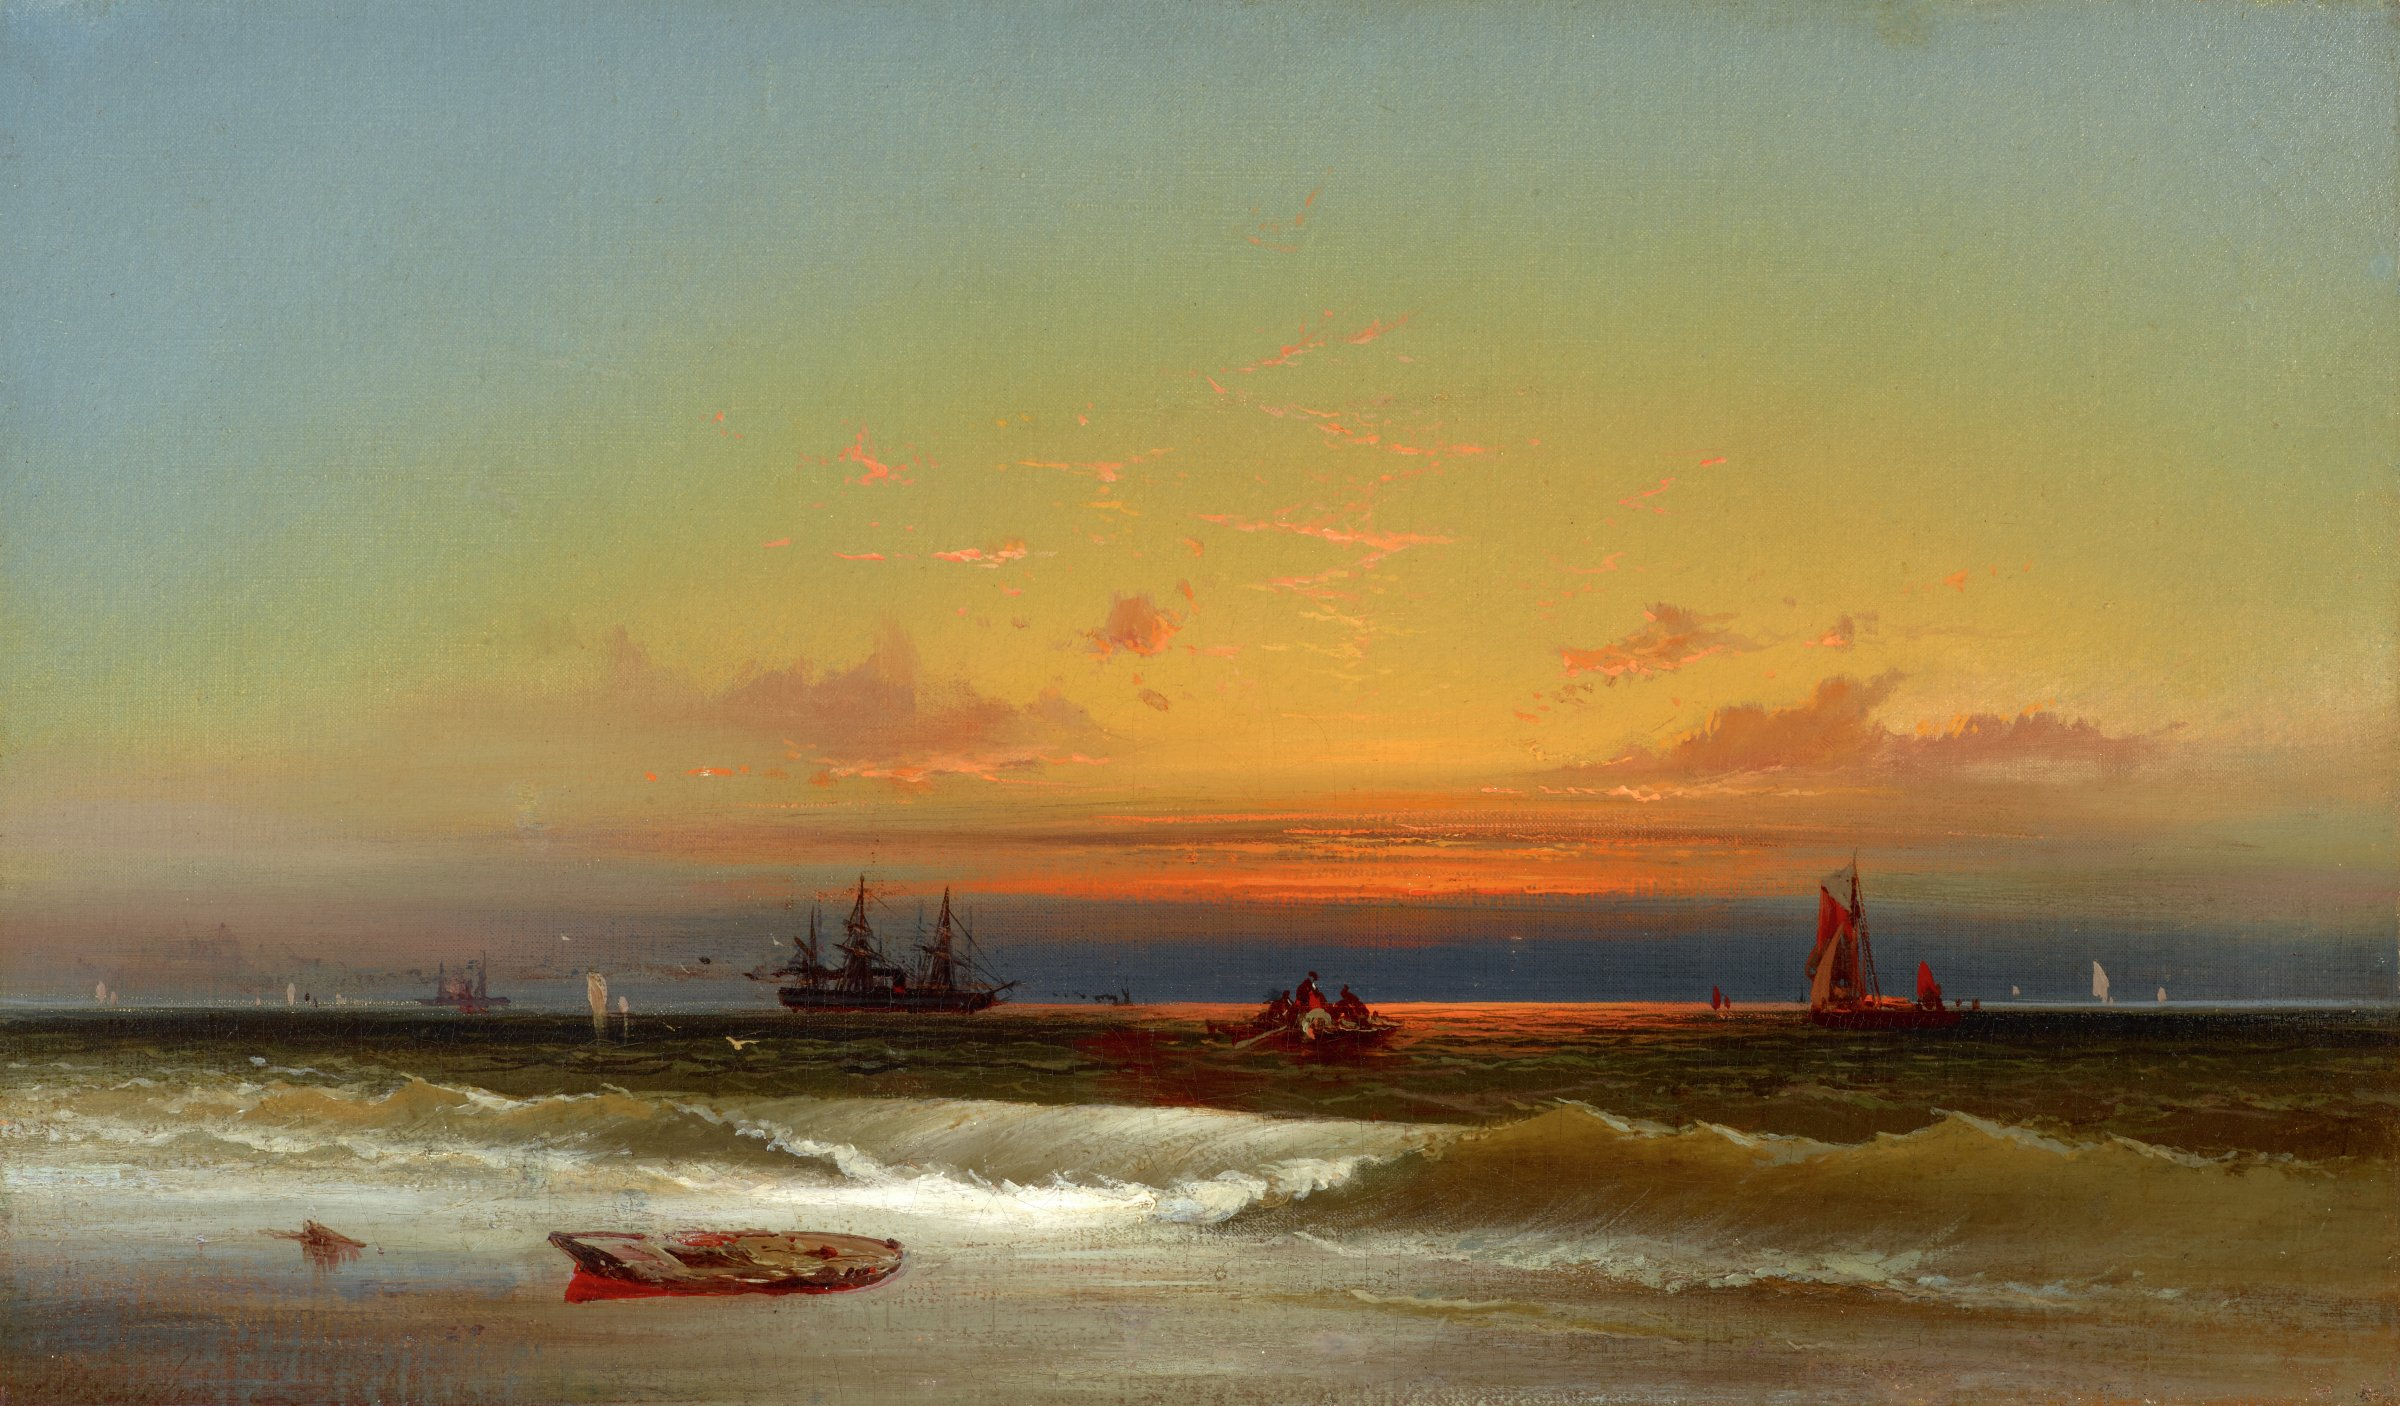 This painting represents a cresting wave breaking on a shoreline. A boat rests in shallow water and sand just in front of the breaking wave. Many boats are visible scattered at sail, offshore. Just above the horizon is a brilliantly colored sunsest and a sky with scattered clouds.